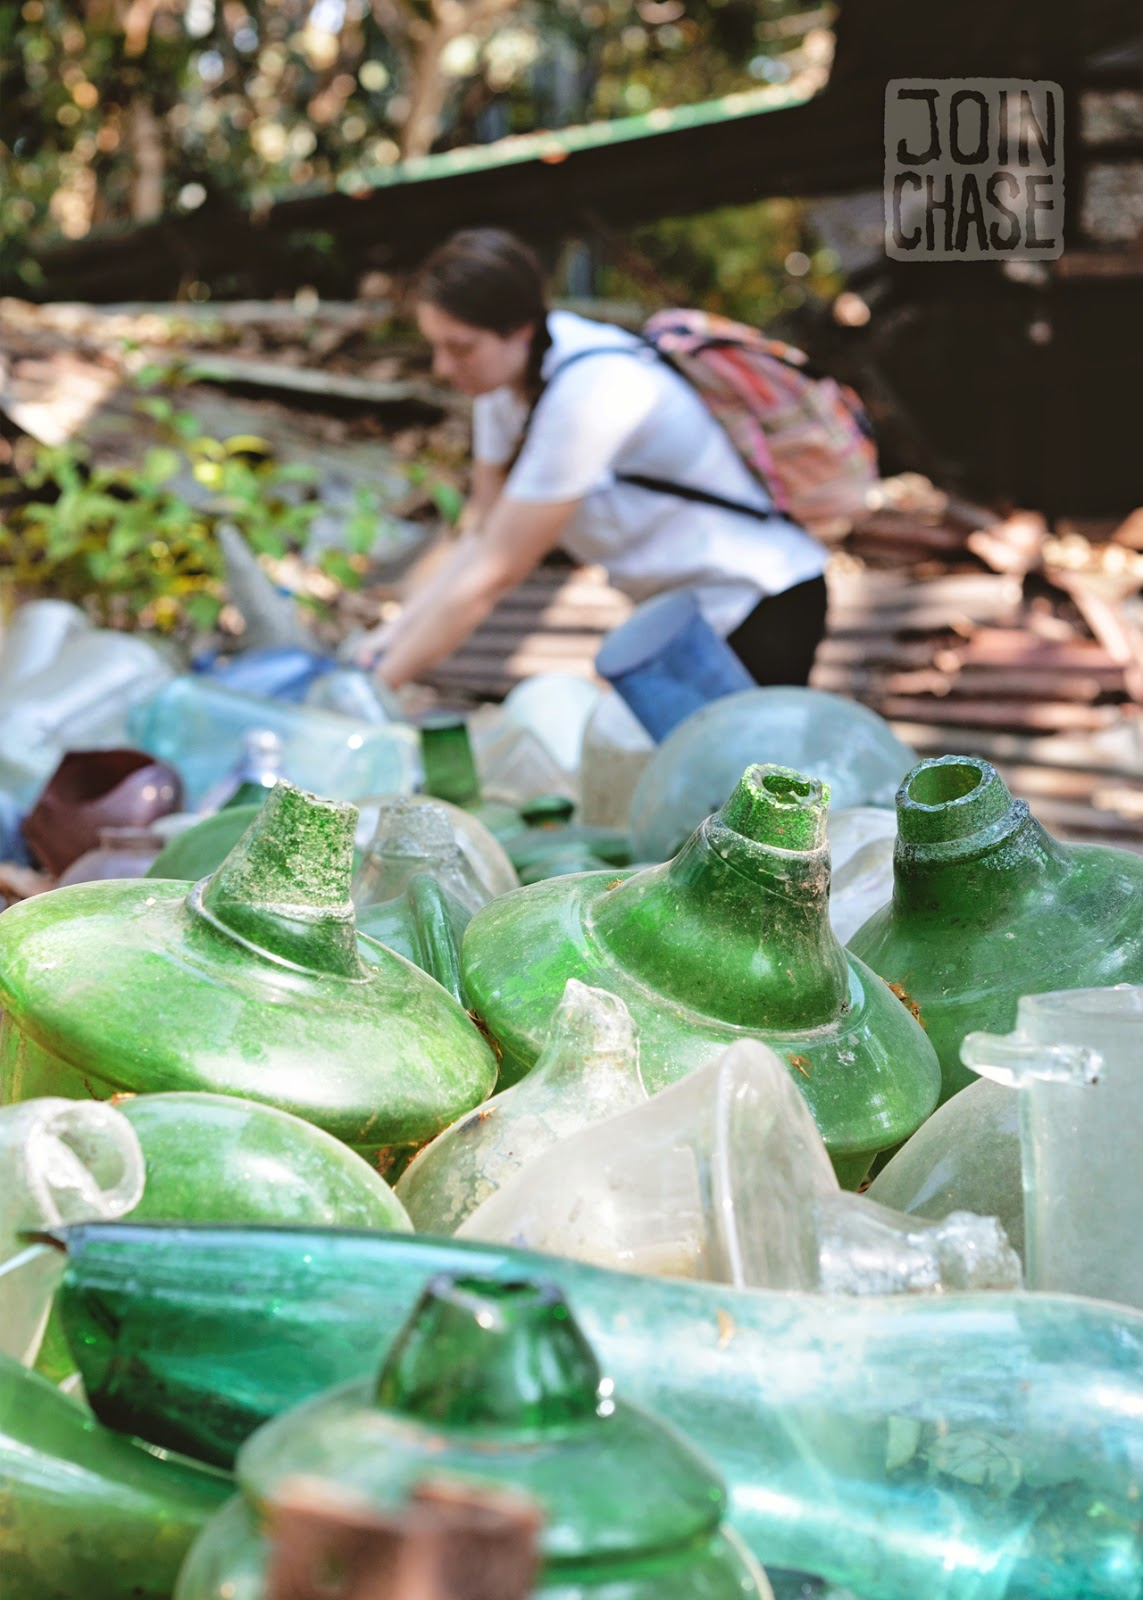 A visitor looking for old glass items around Nagar Glass Factory in Yangon, Myanmar.